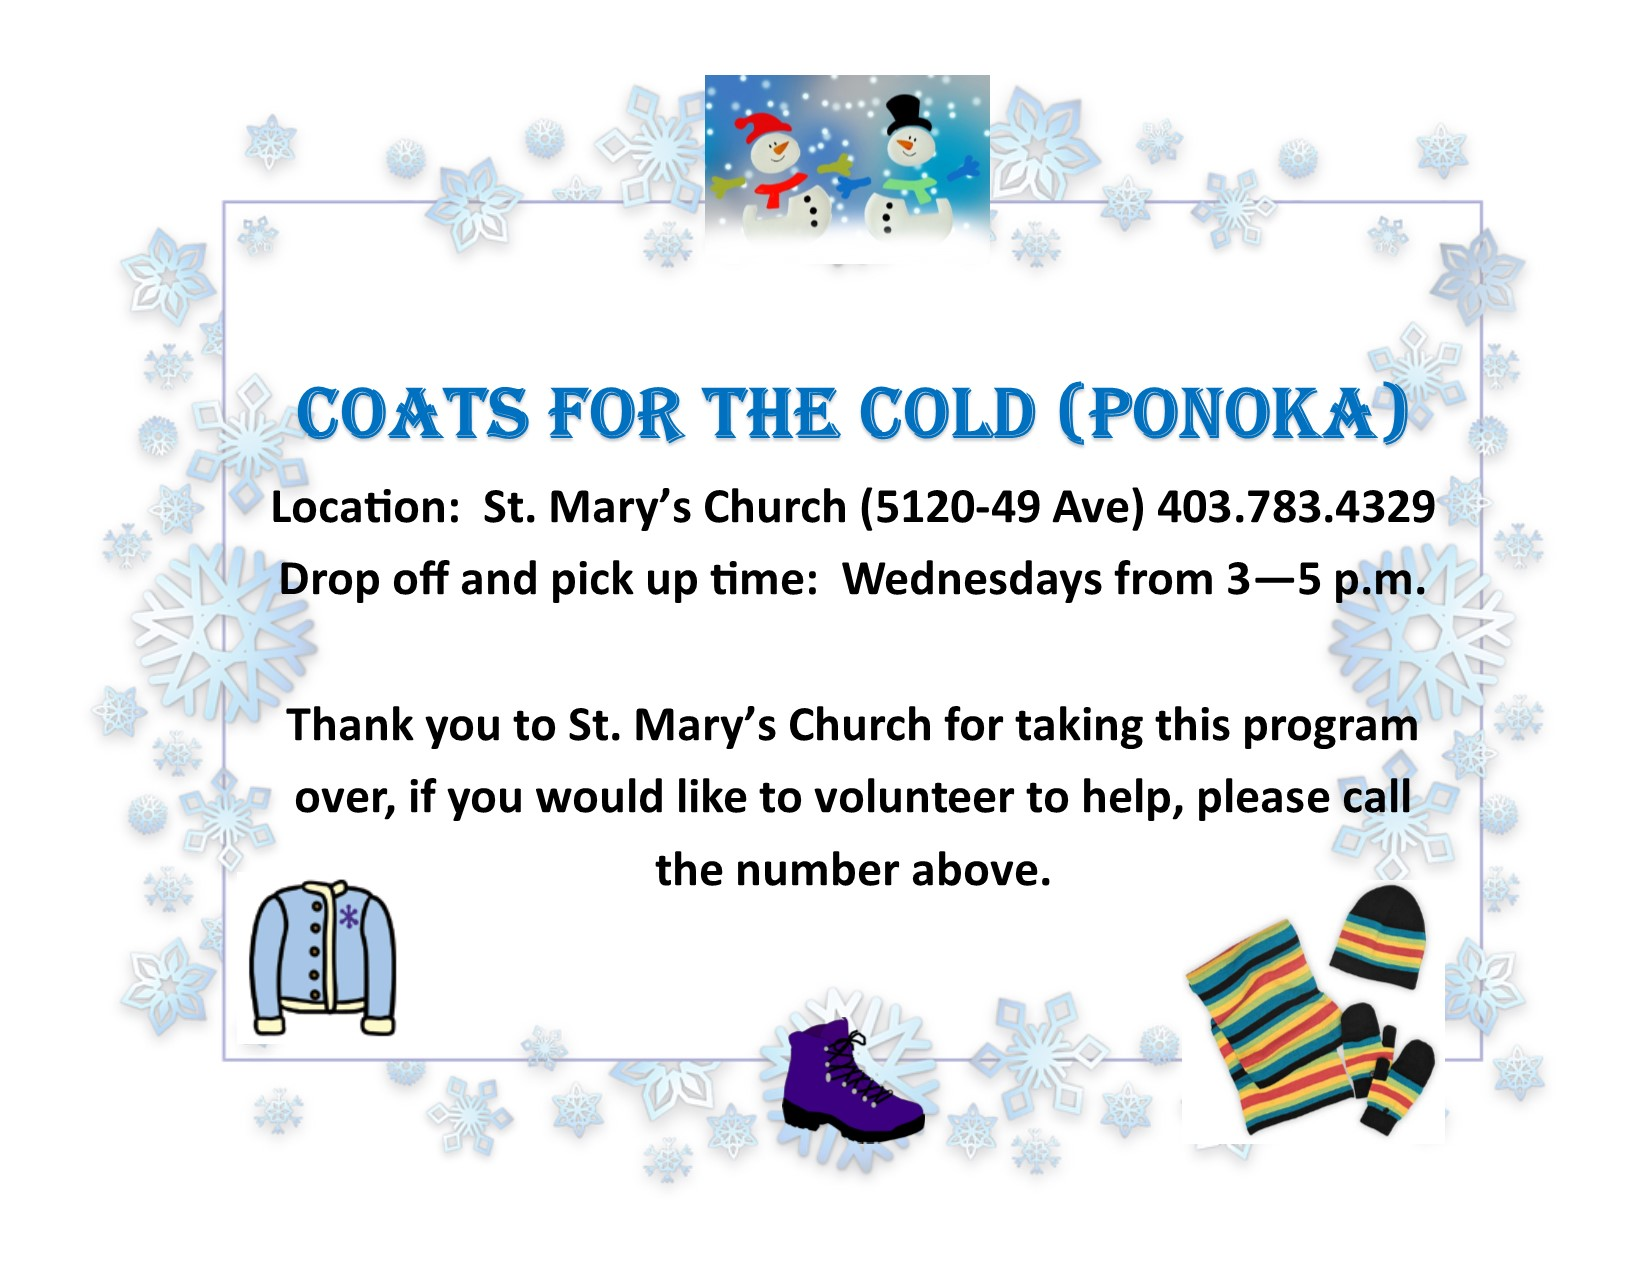 Coats for the Cold - contact St. Mary's Church 403-783-4329